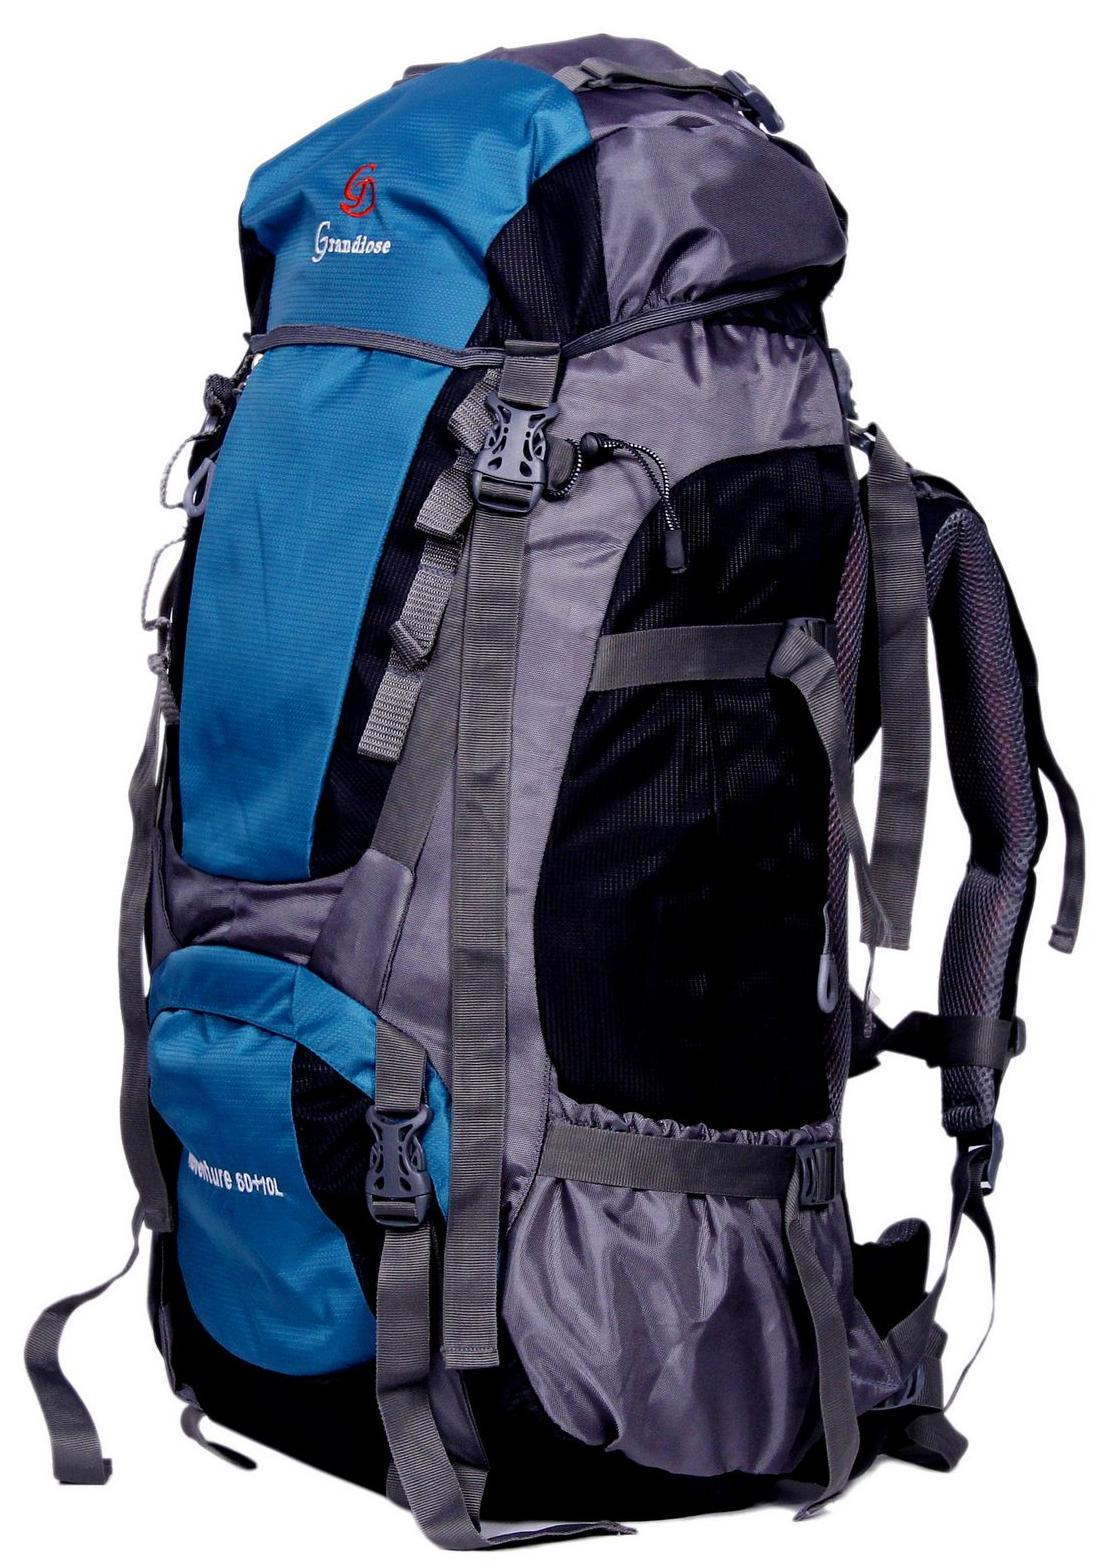 dccd8789fab3 Buy Grandiose 70L Teal Blue Hiking Trekking Camping Rucksack Backpack Bags  (GTB67001TB) Online at Low Prices in India - Paytmmall.com